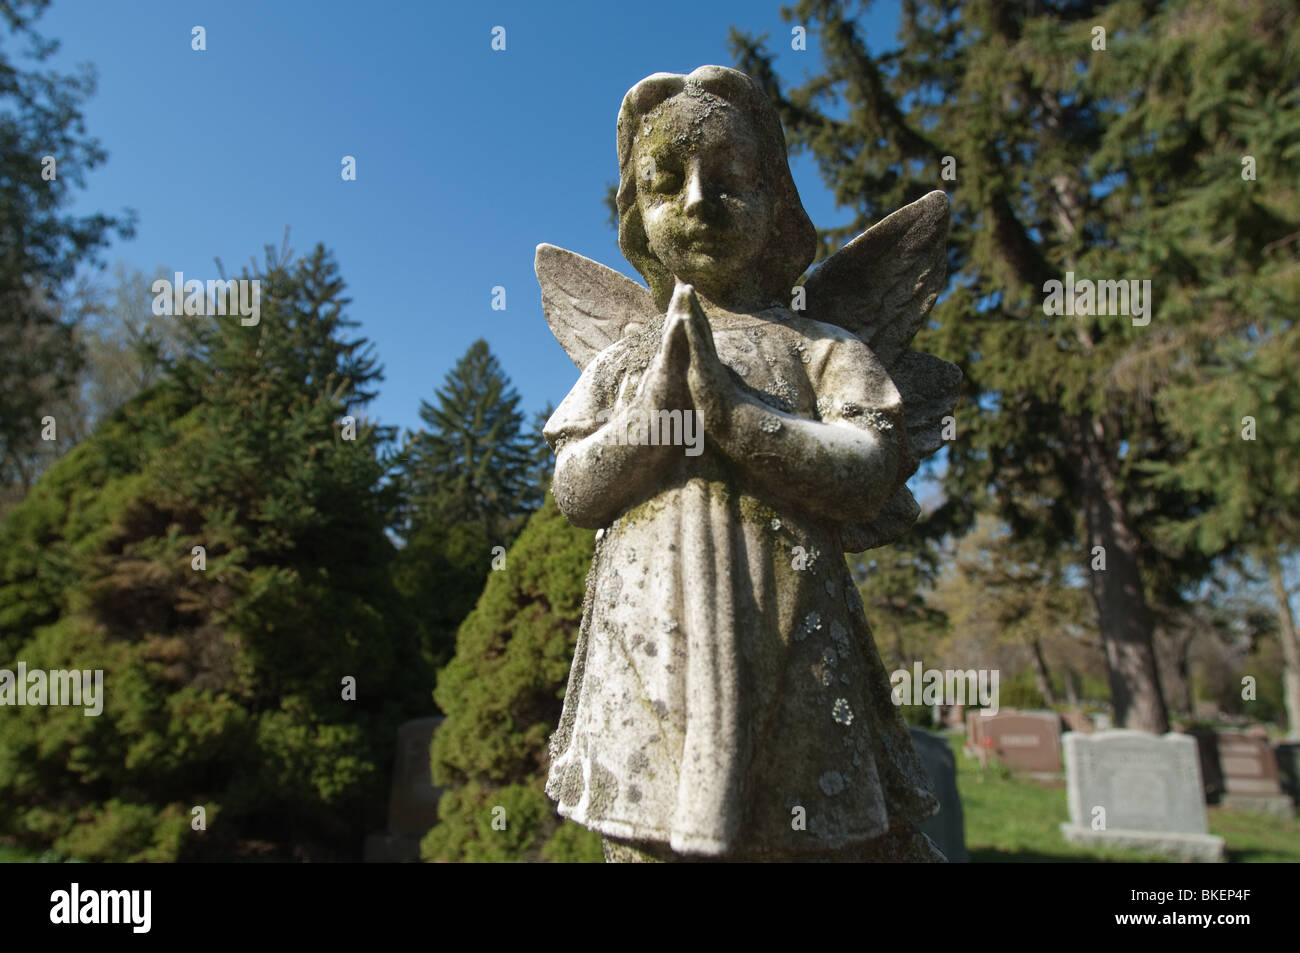 A statue of an angelic child is frozen in time with  its' hands clasped in silent prayer. - Stock Image